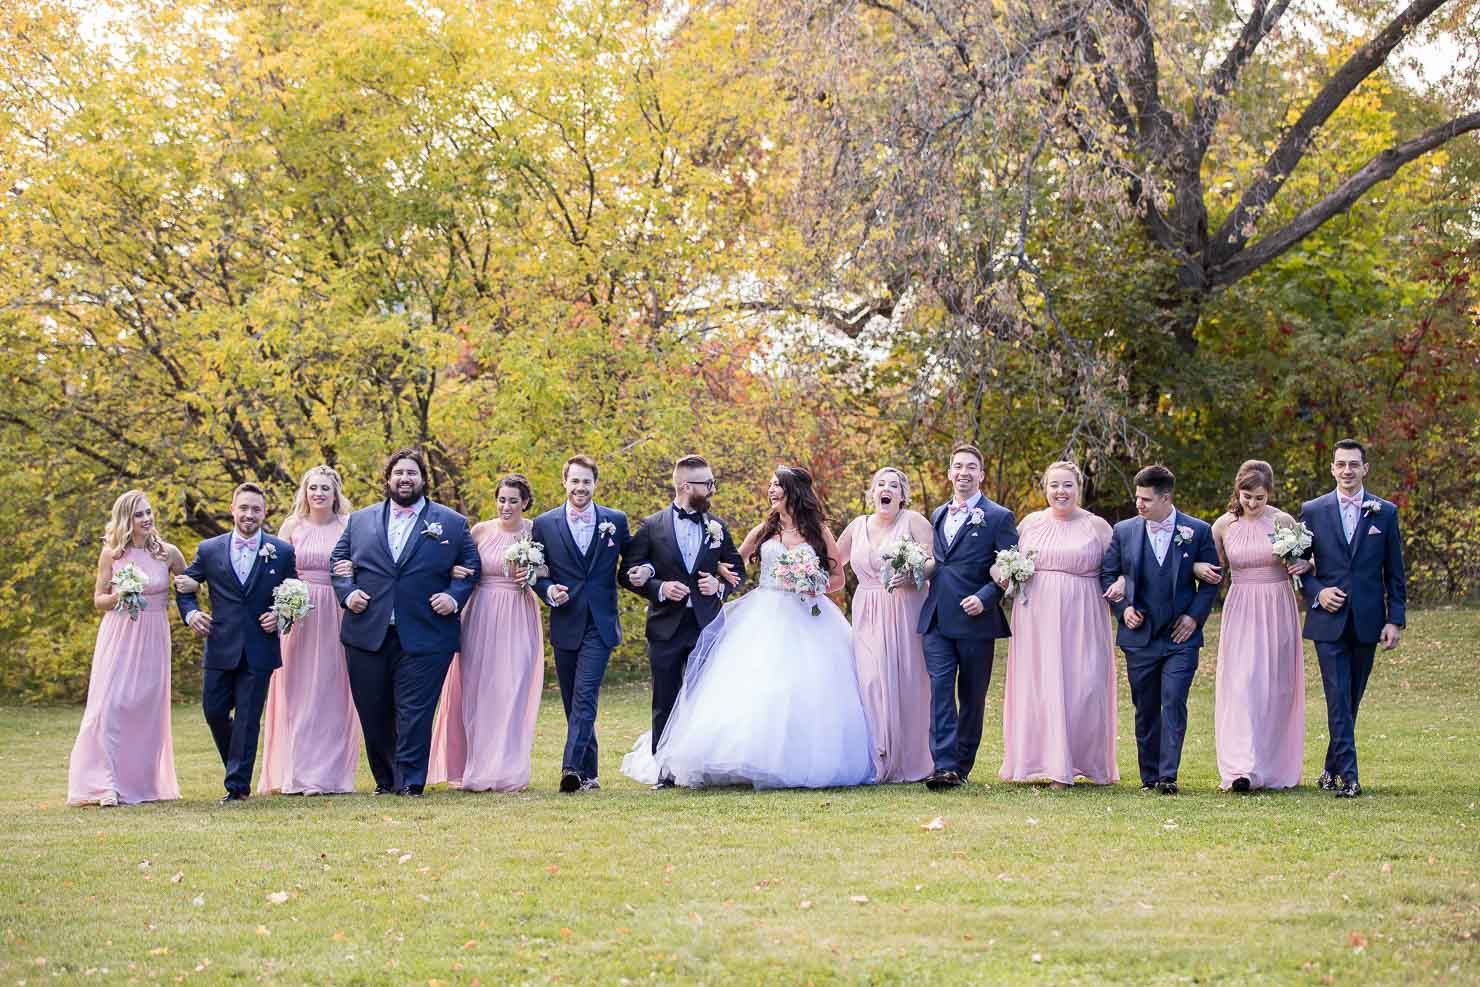 wedding, bridal party, wedding, sudbury wedding, akaiserphoto, wedding photographer